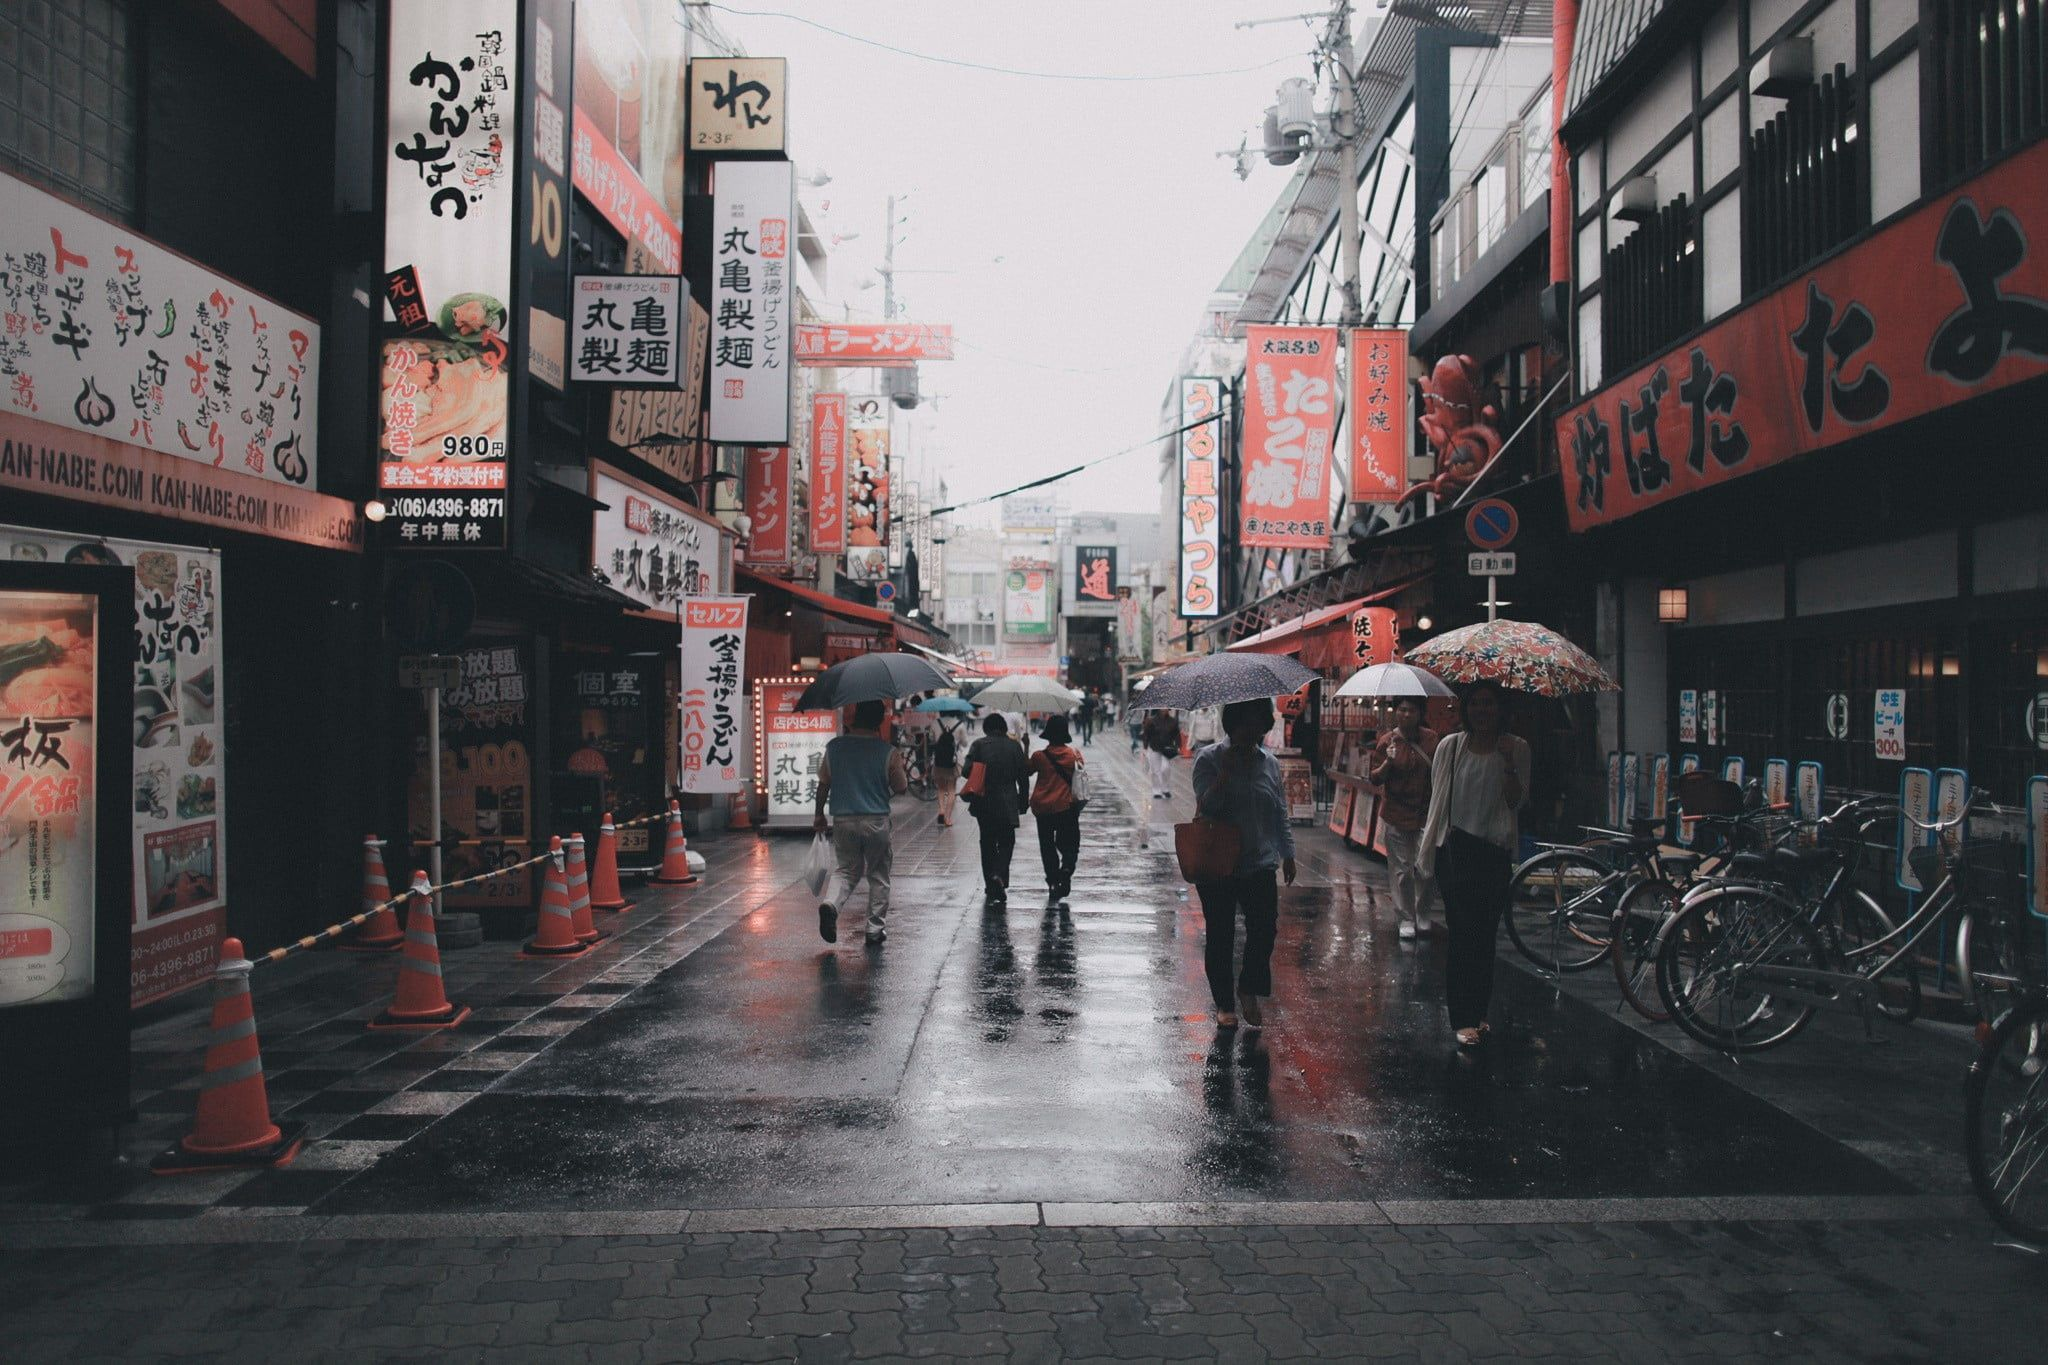 Black Umbrella Umbrella Asian Street Japan Japanese In 2020 Aesthetic Desktop Wallpaper Laptop Wallpaper Desktop Wallpapers Computer Wallpaper Desktop Wallpapers